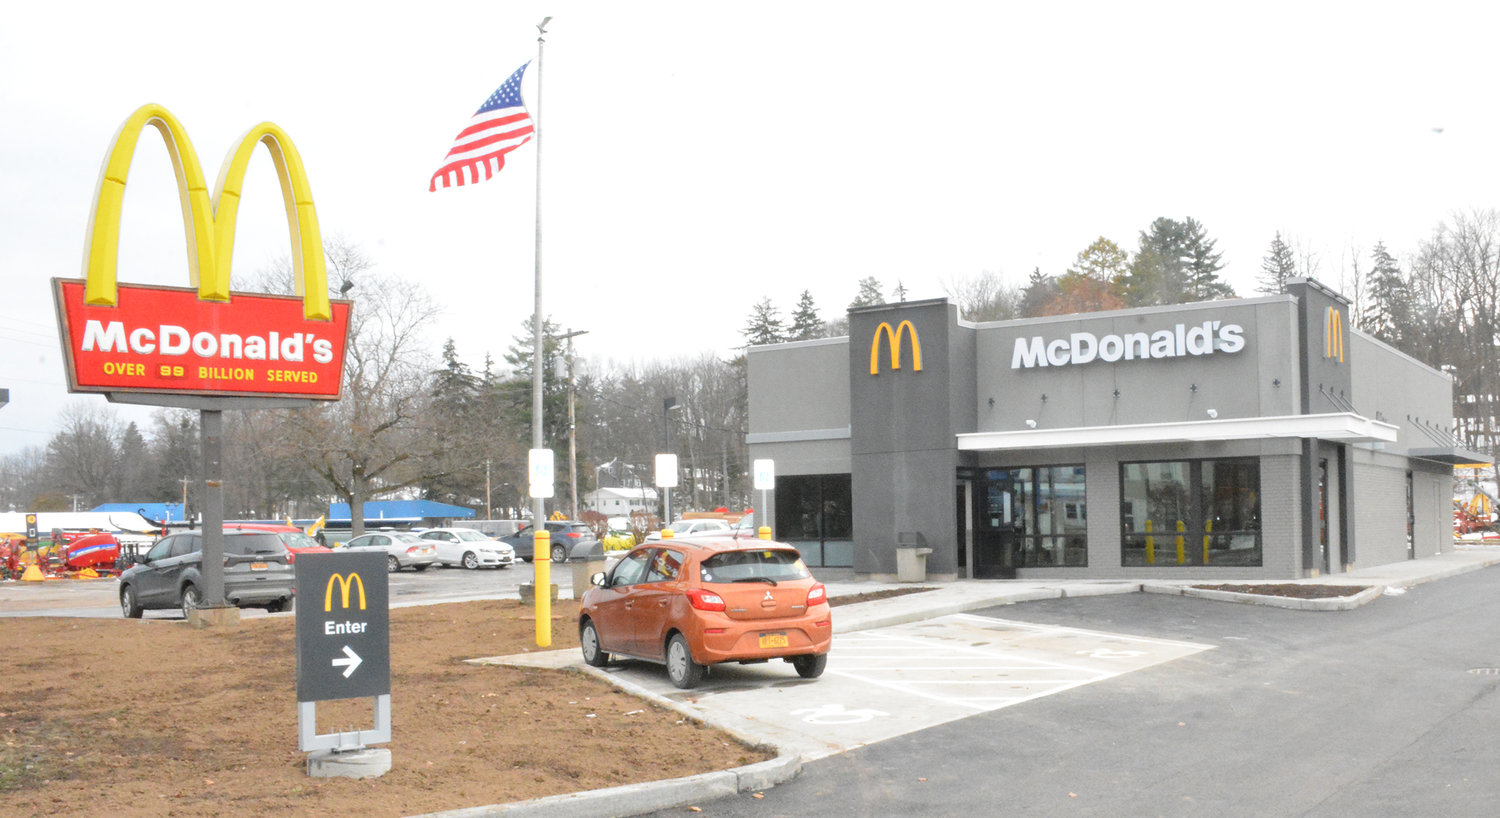 McNEW — Ground broke in late September on the major restoration project on the Meadow Street McDonald's and wrapped up on Friday, Nov. 15. The newly remodeled restaurant now offers specialized coffee drinks, kiosks, digital menus and soft muted decor.